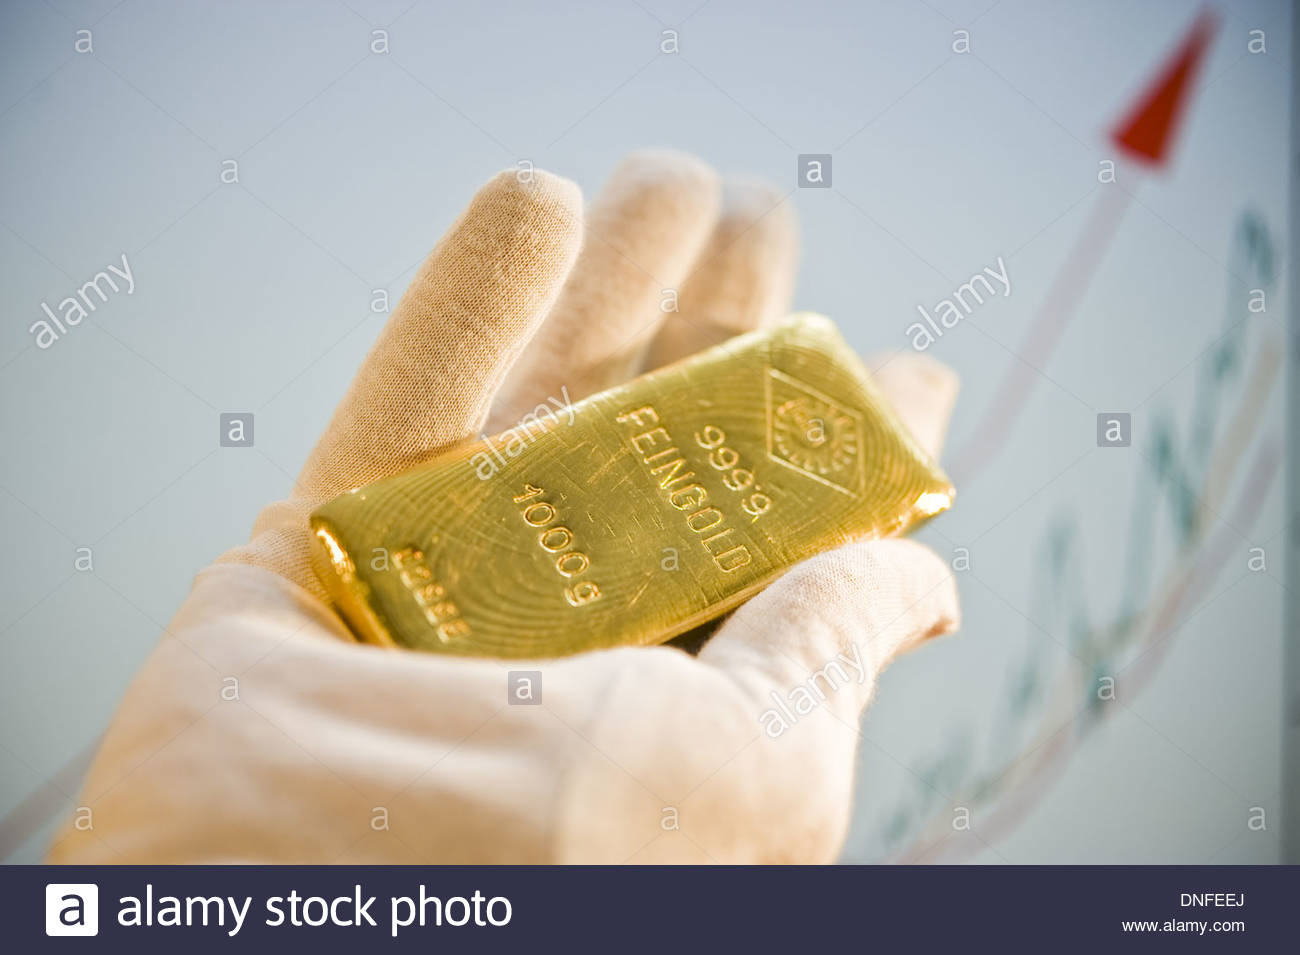 Ein Goldbarren 1 kg, Gold Bar - Stock Image